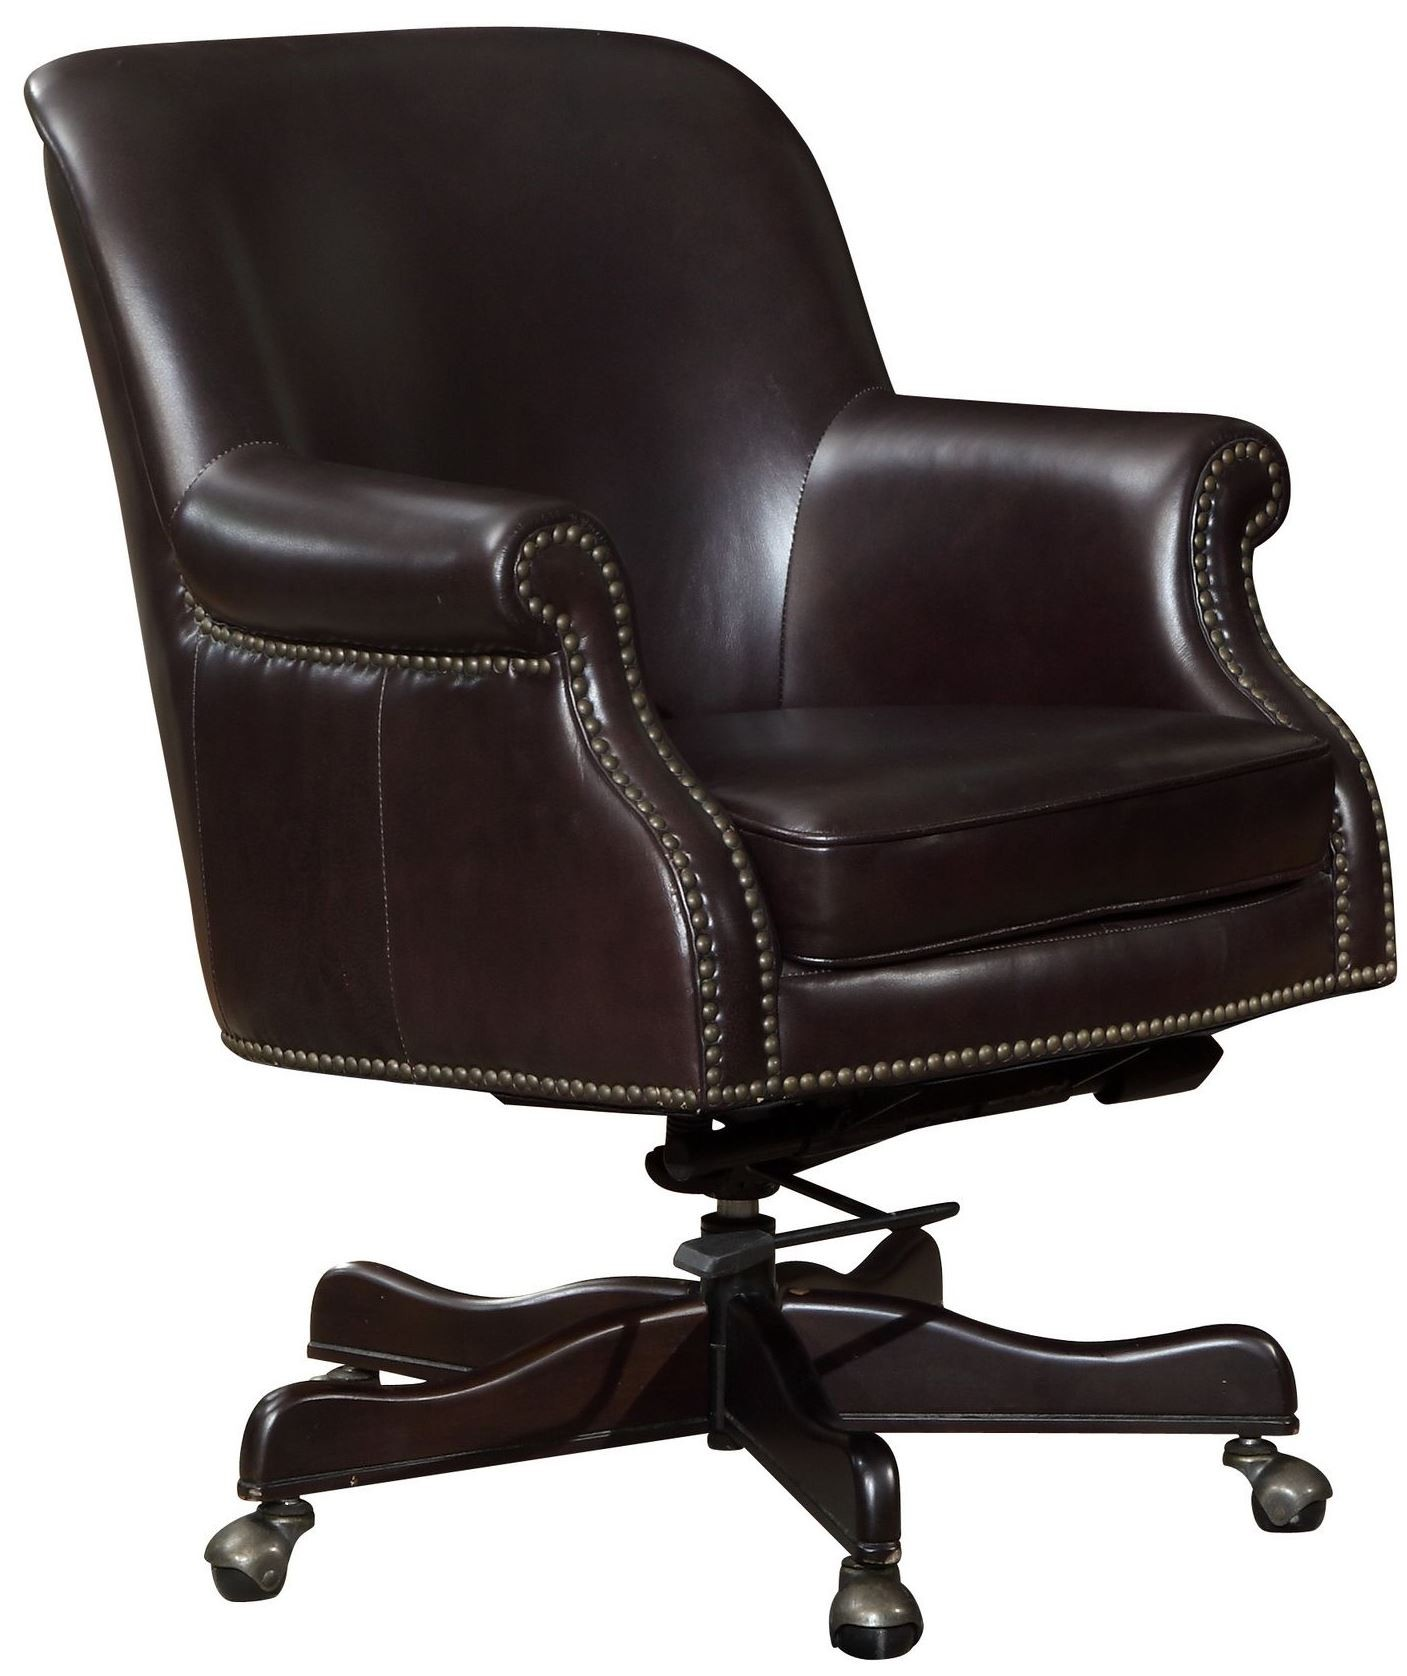 Brick Office Furniture ~ Sullivan brick leather office chair from lazzaro wh c